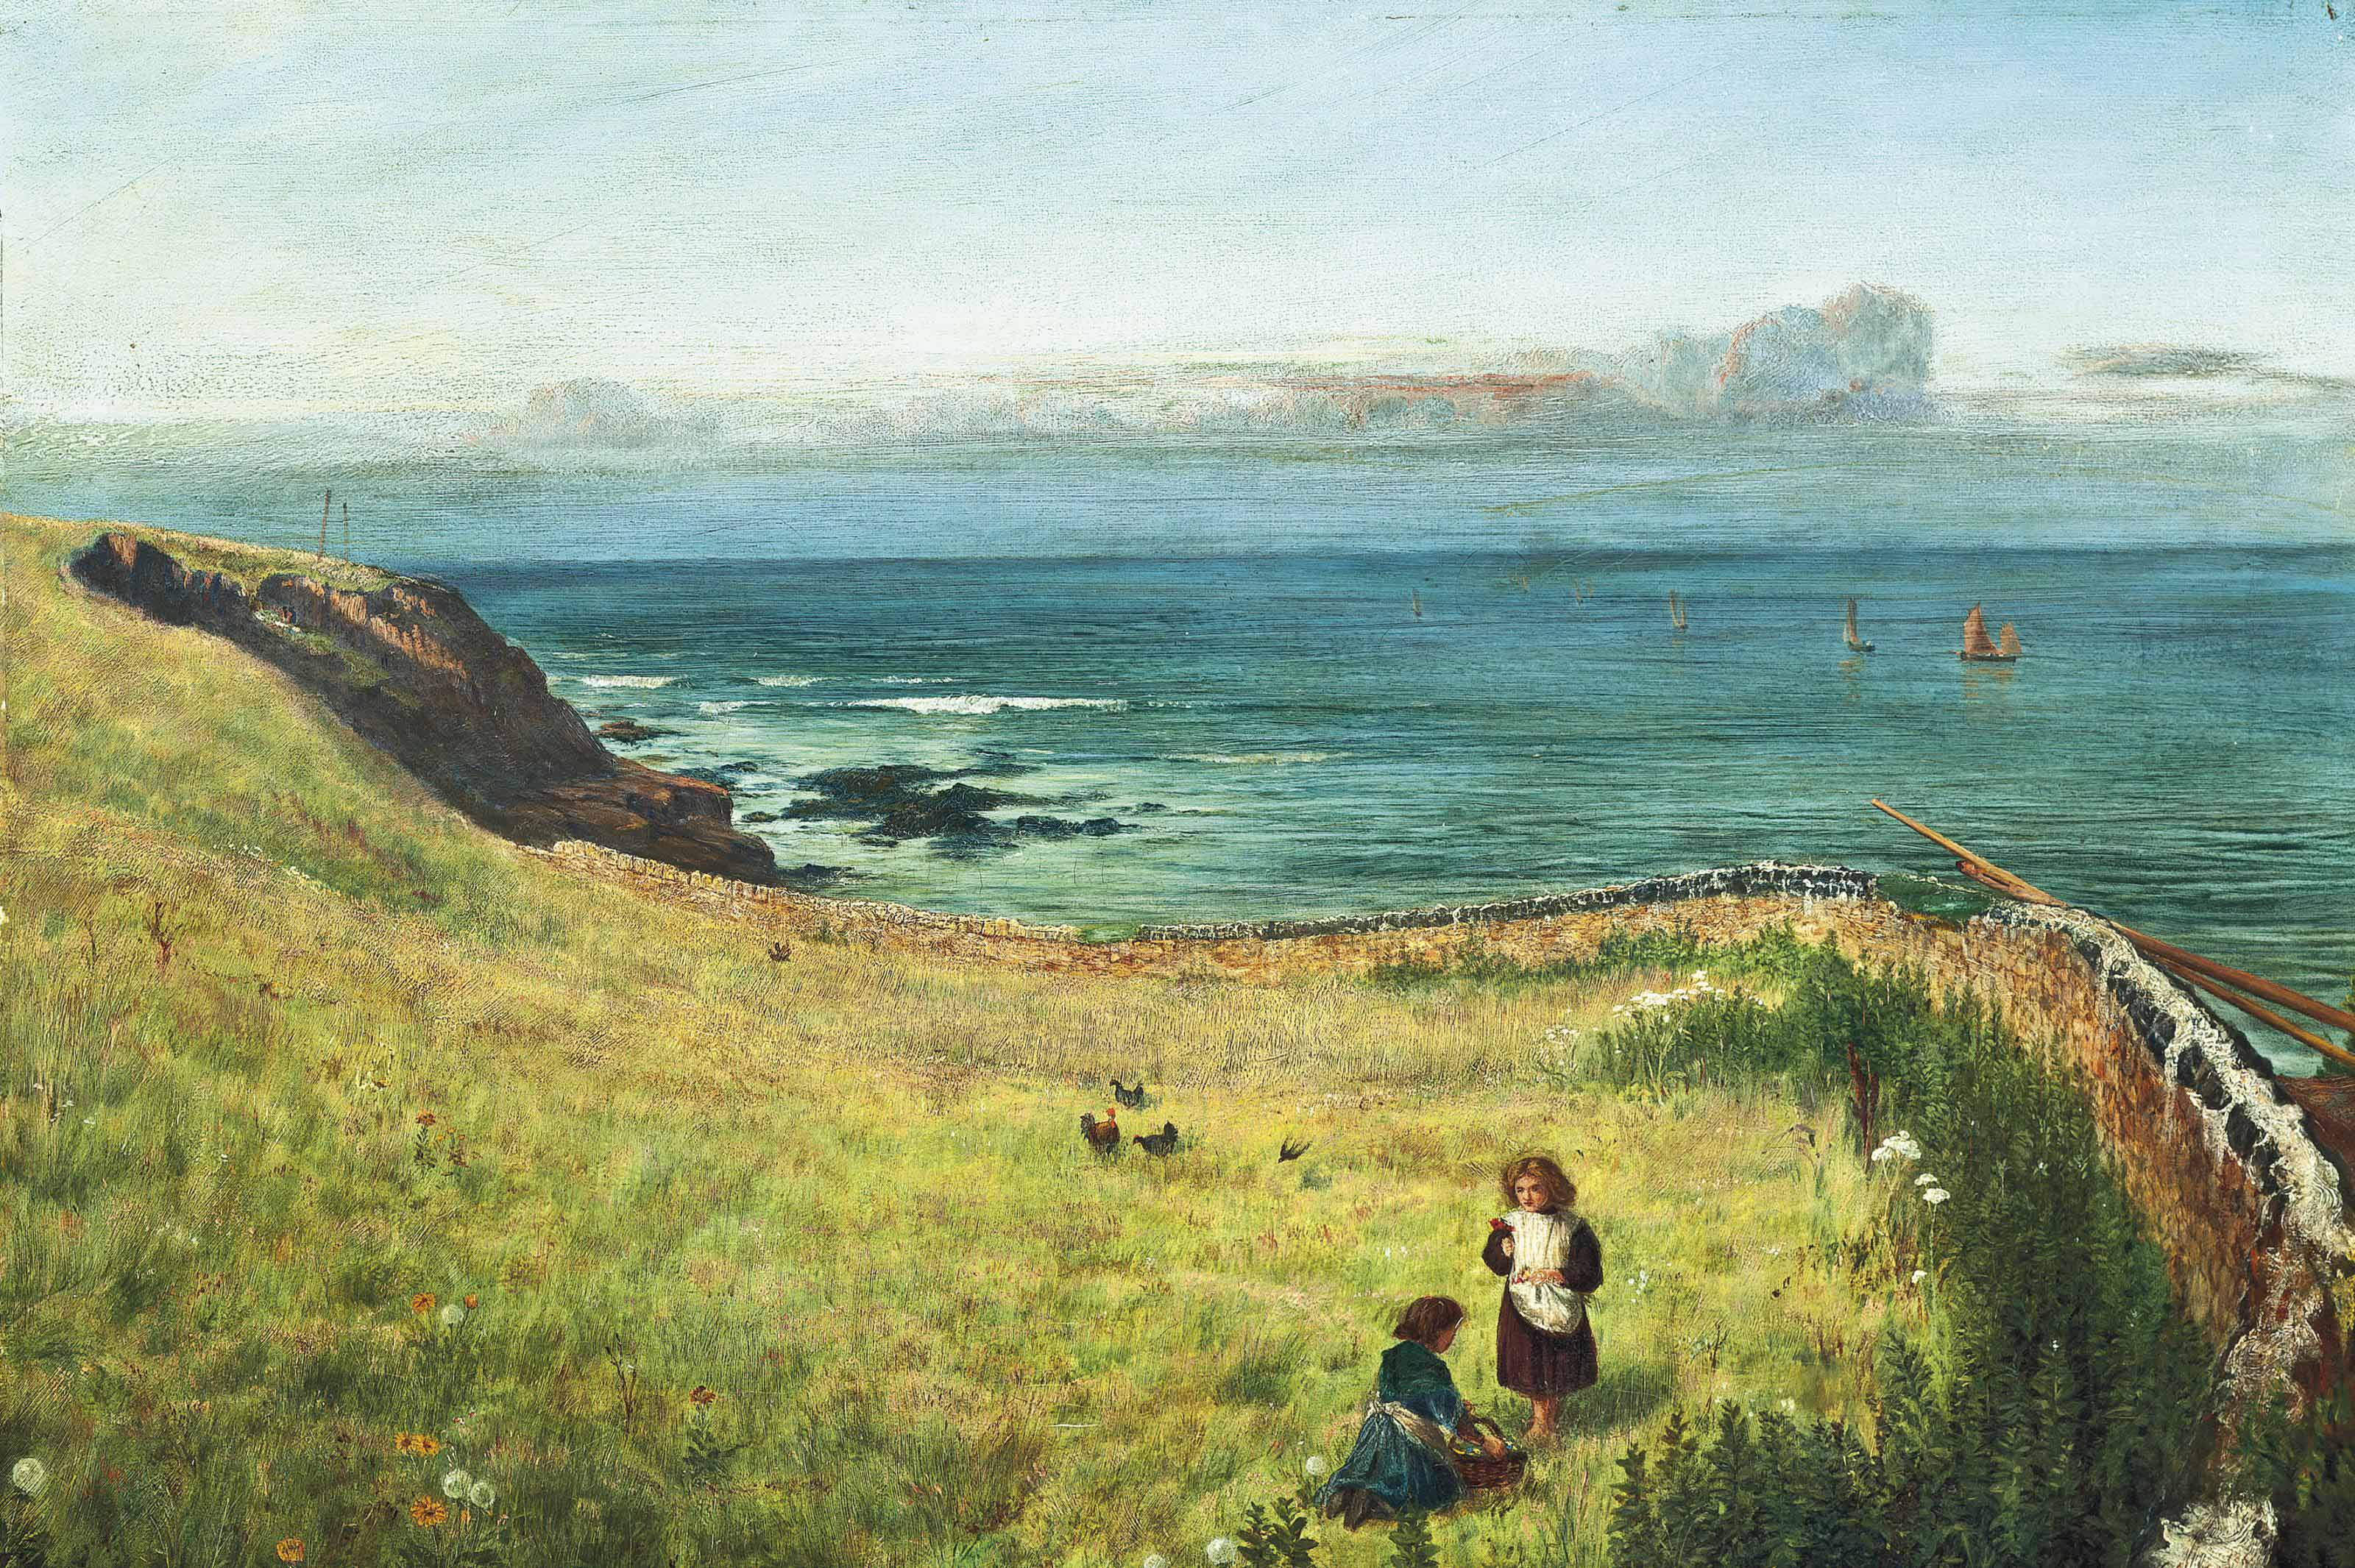 The meadow by the sea